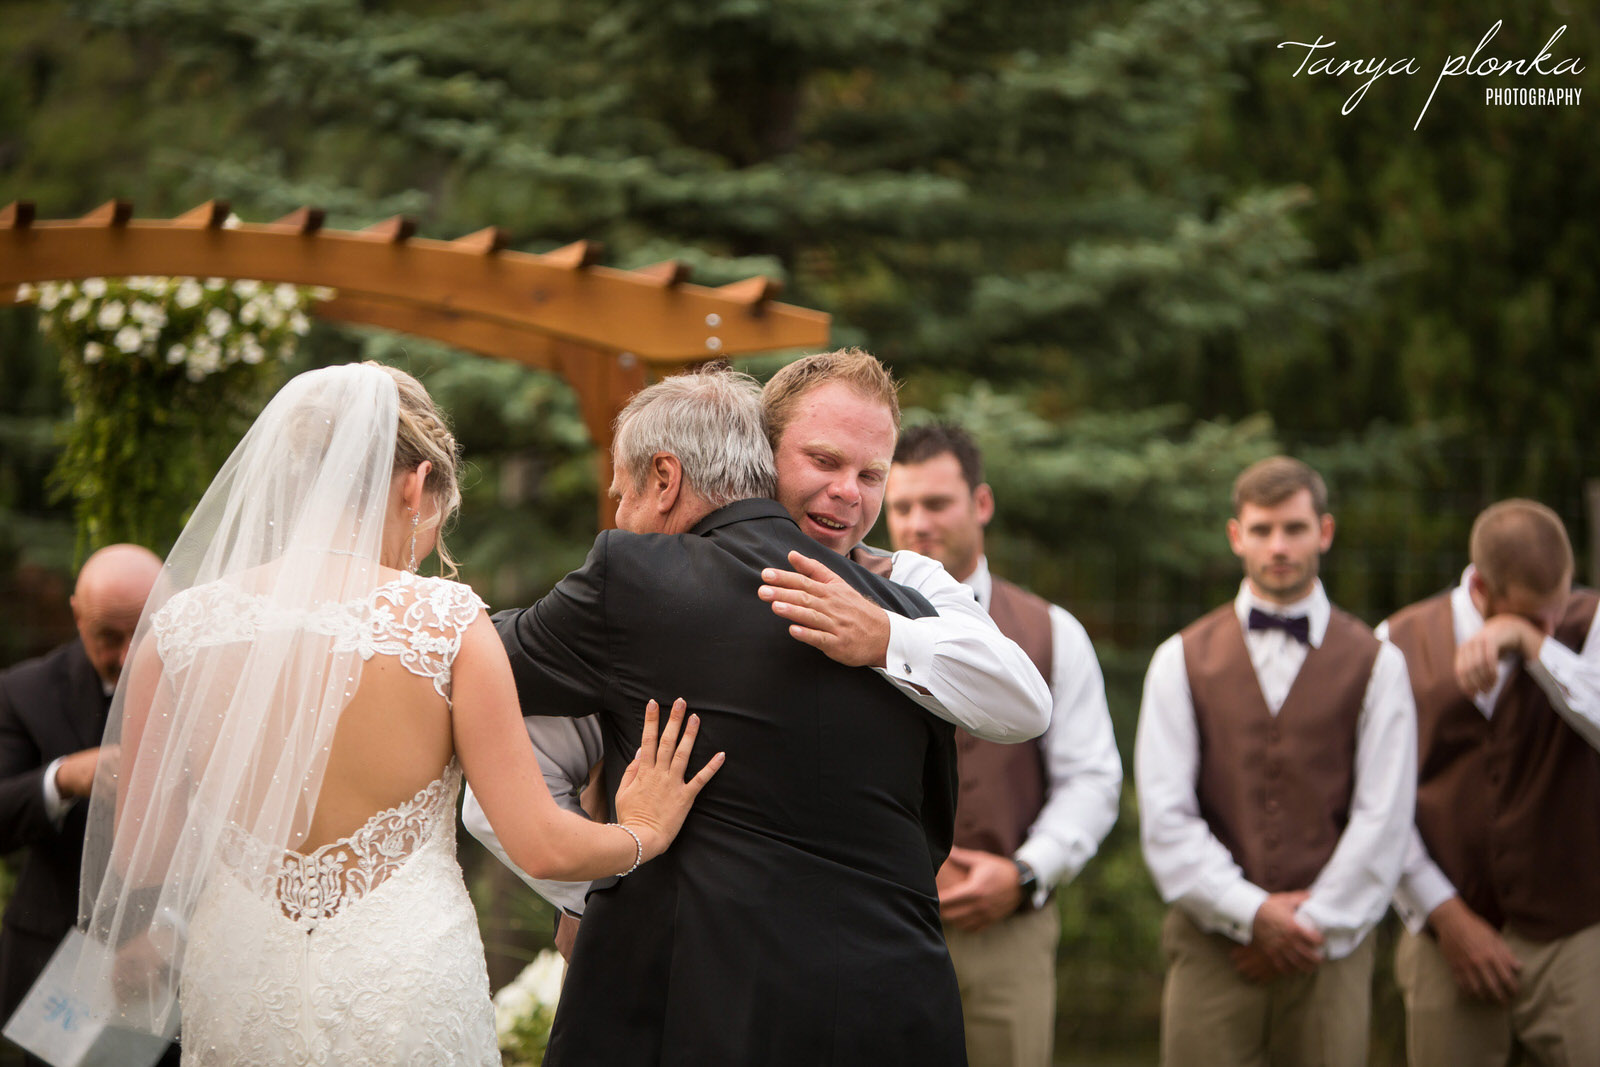 emotional groom hugs bride's dad at wedding ceremony while groomsman in background wipes away tear